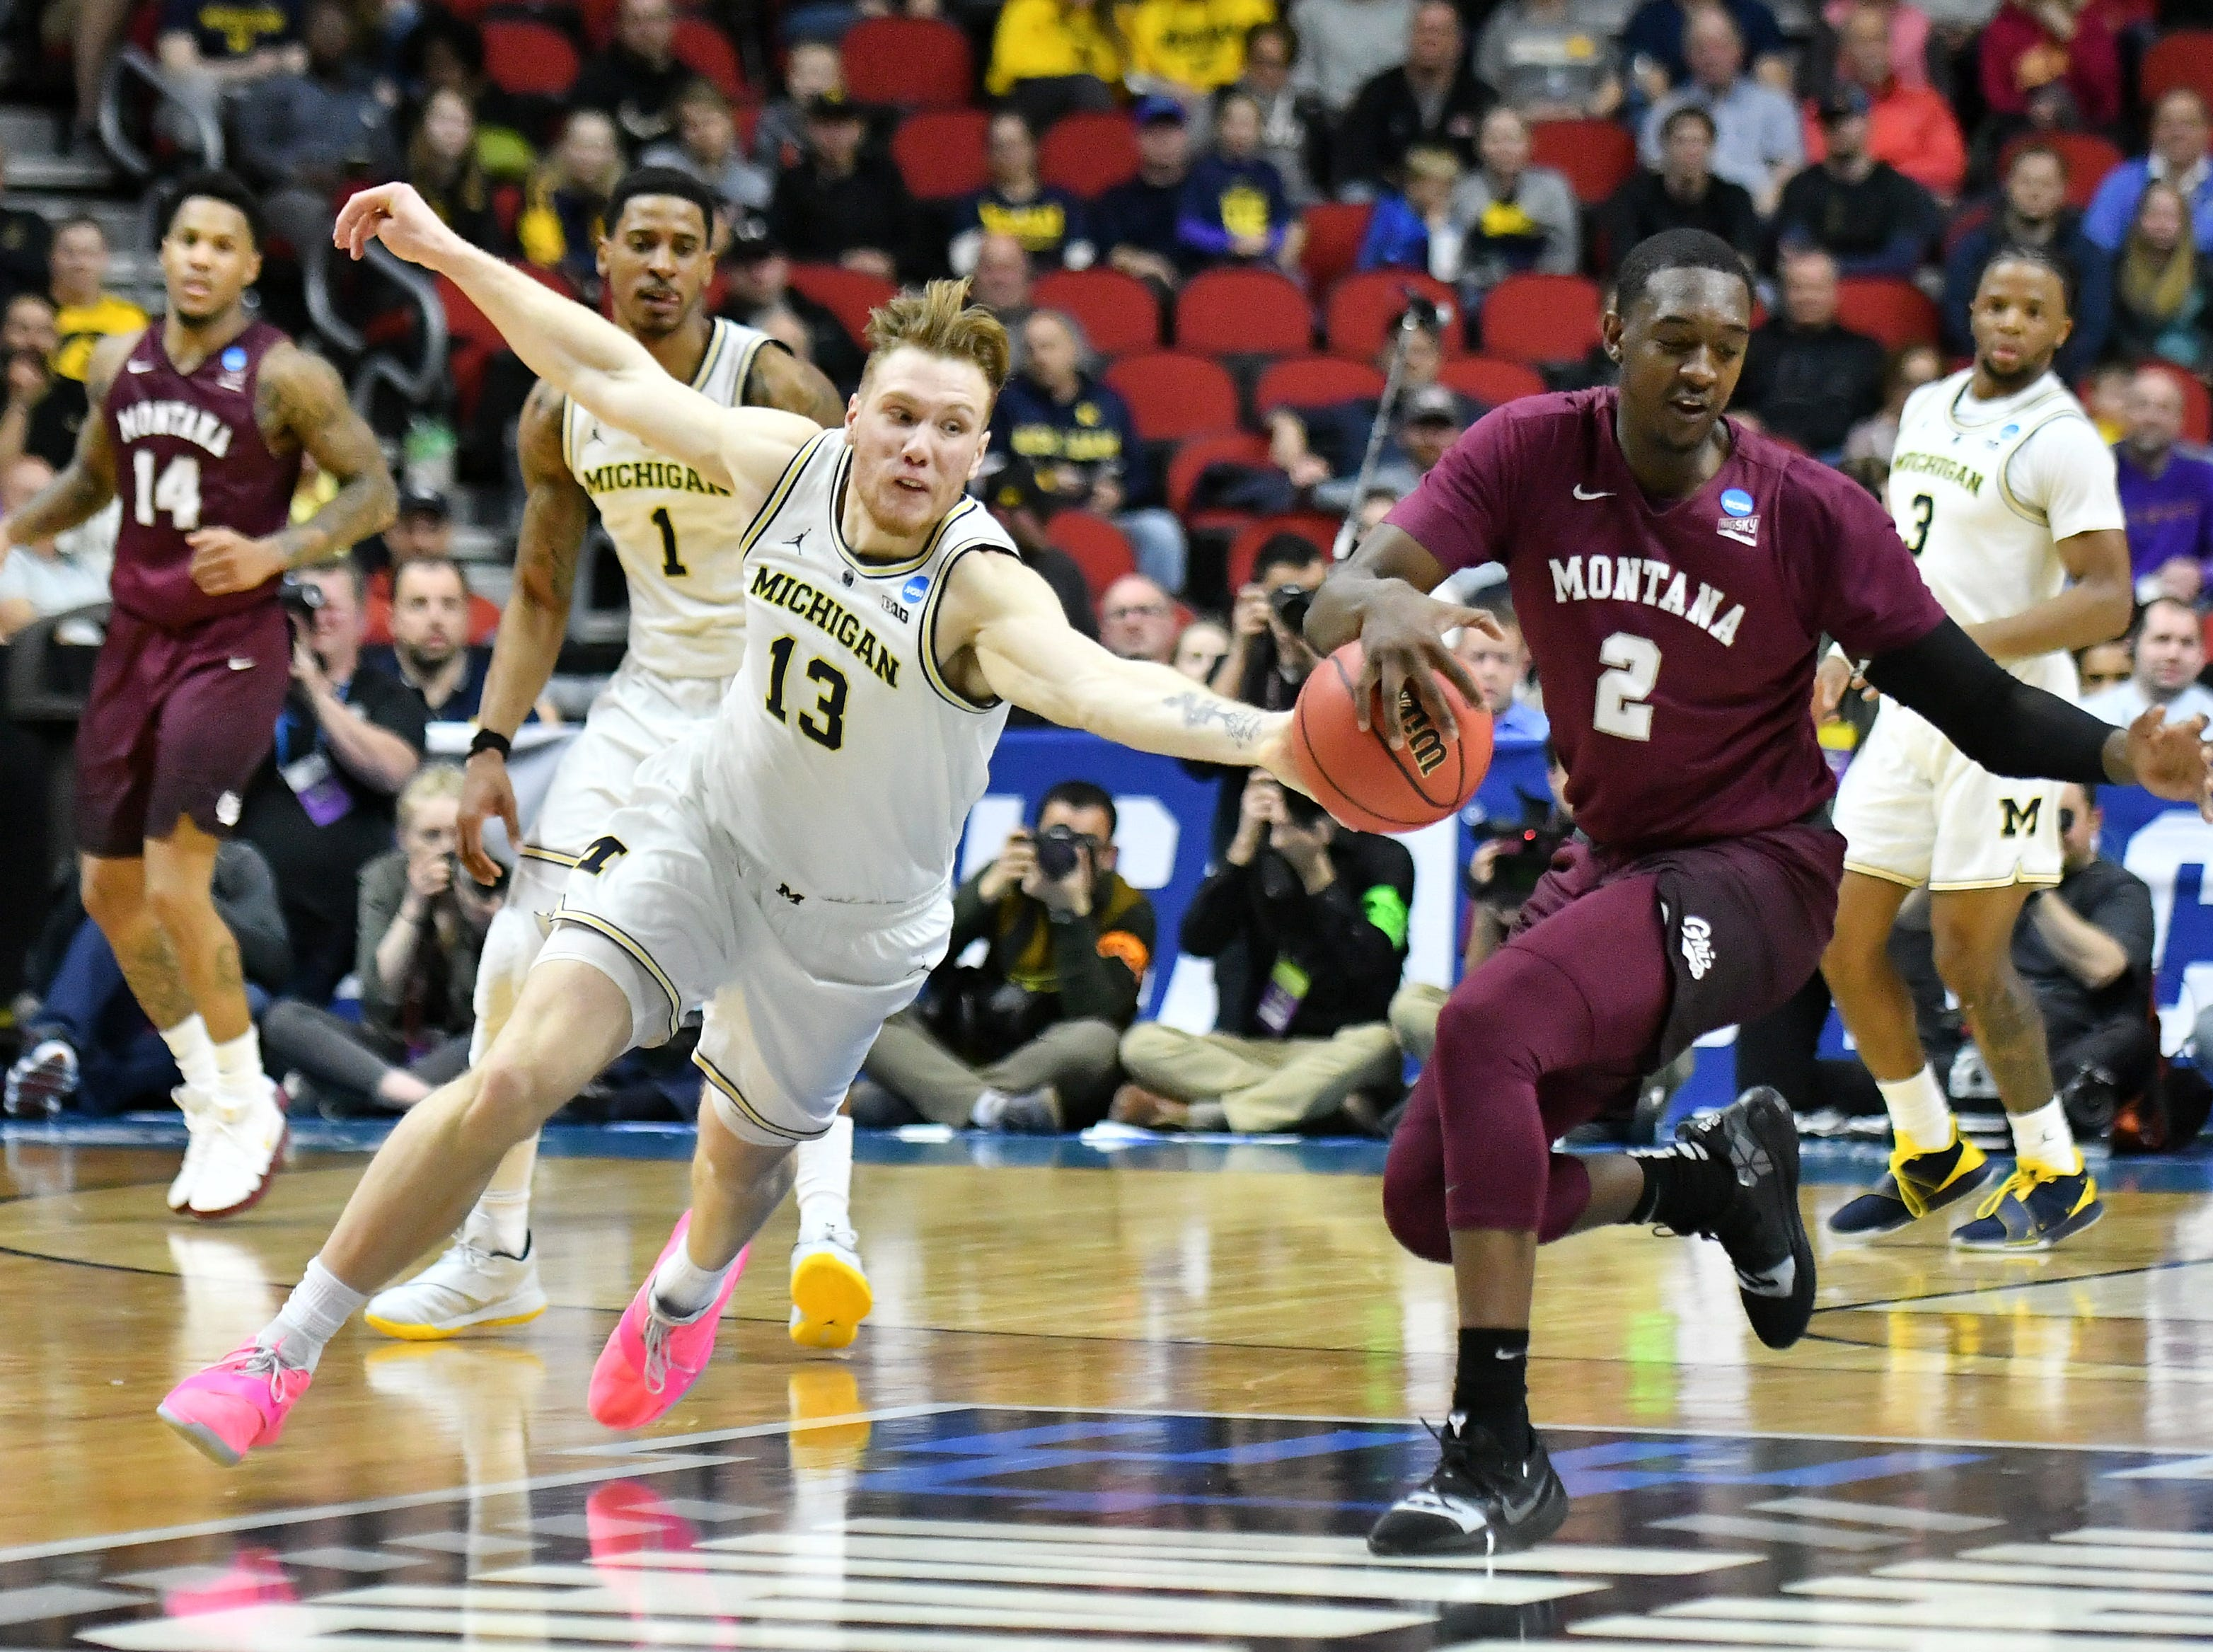 Michigan forward Ignas Brazdeikis (13) steals the ball from Montana guard Donaven Dorsey (2) in the first half.  Michigan vs Montana for Round 1 of the NCAA Tournament at Wells Fargo Arena in Des Moines, Iowa.